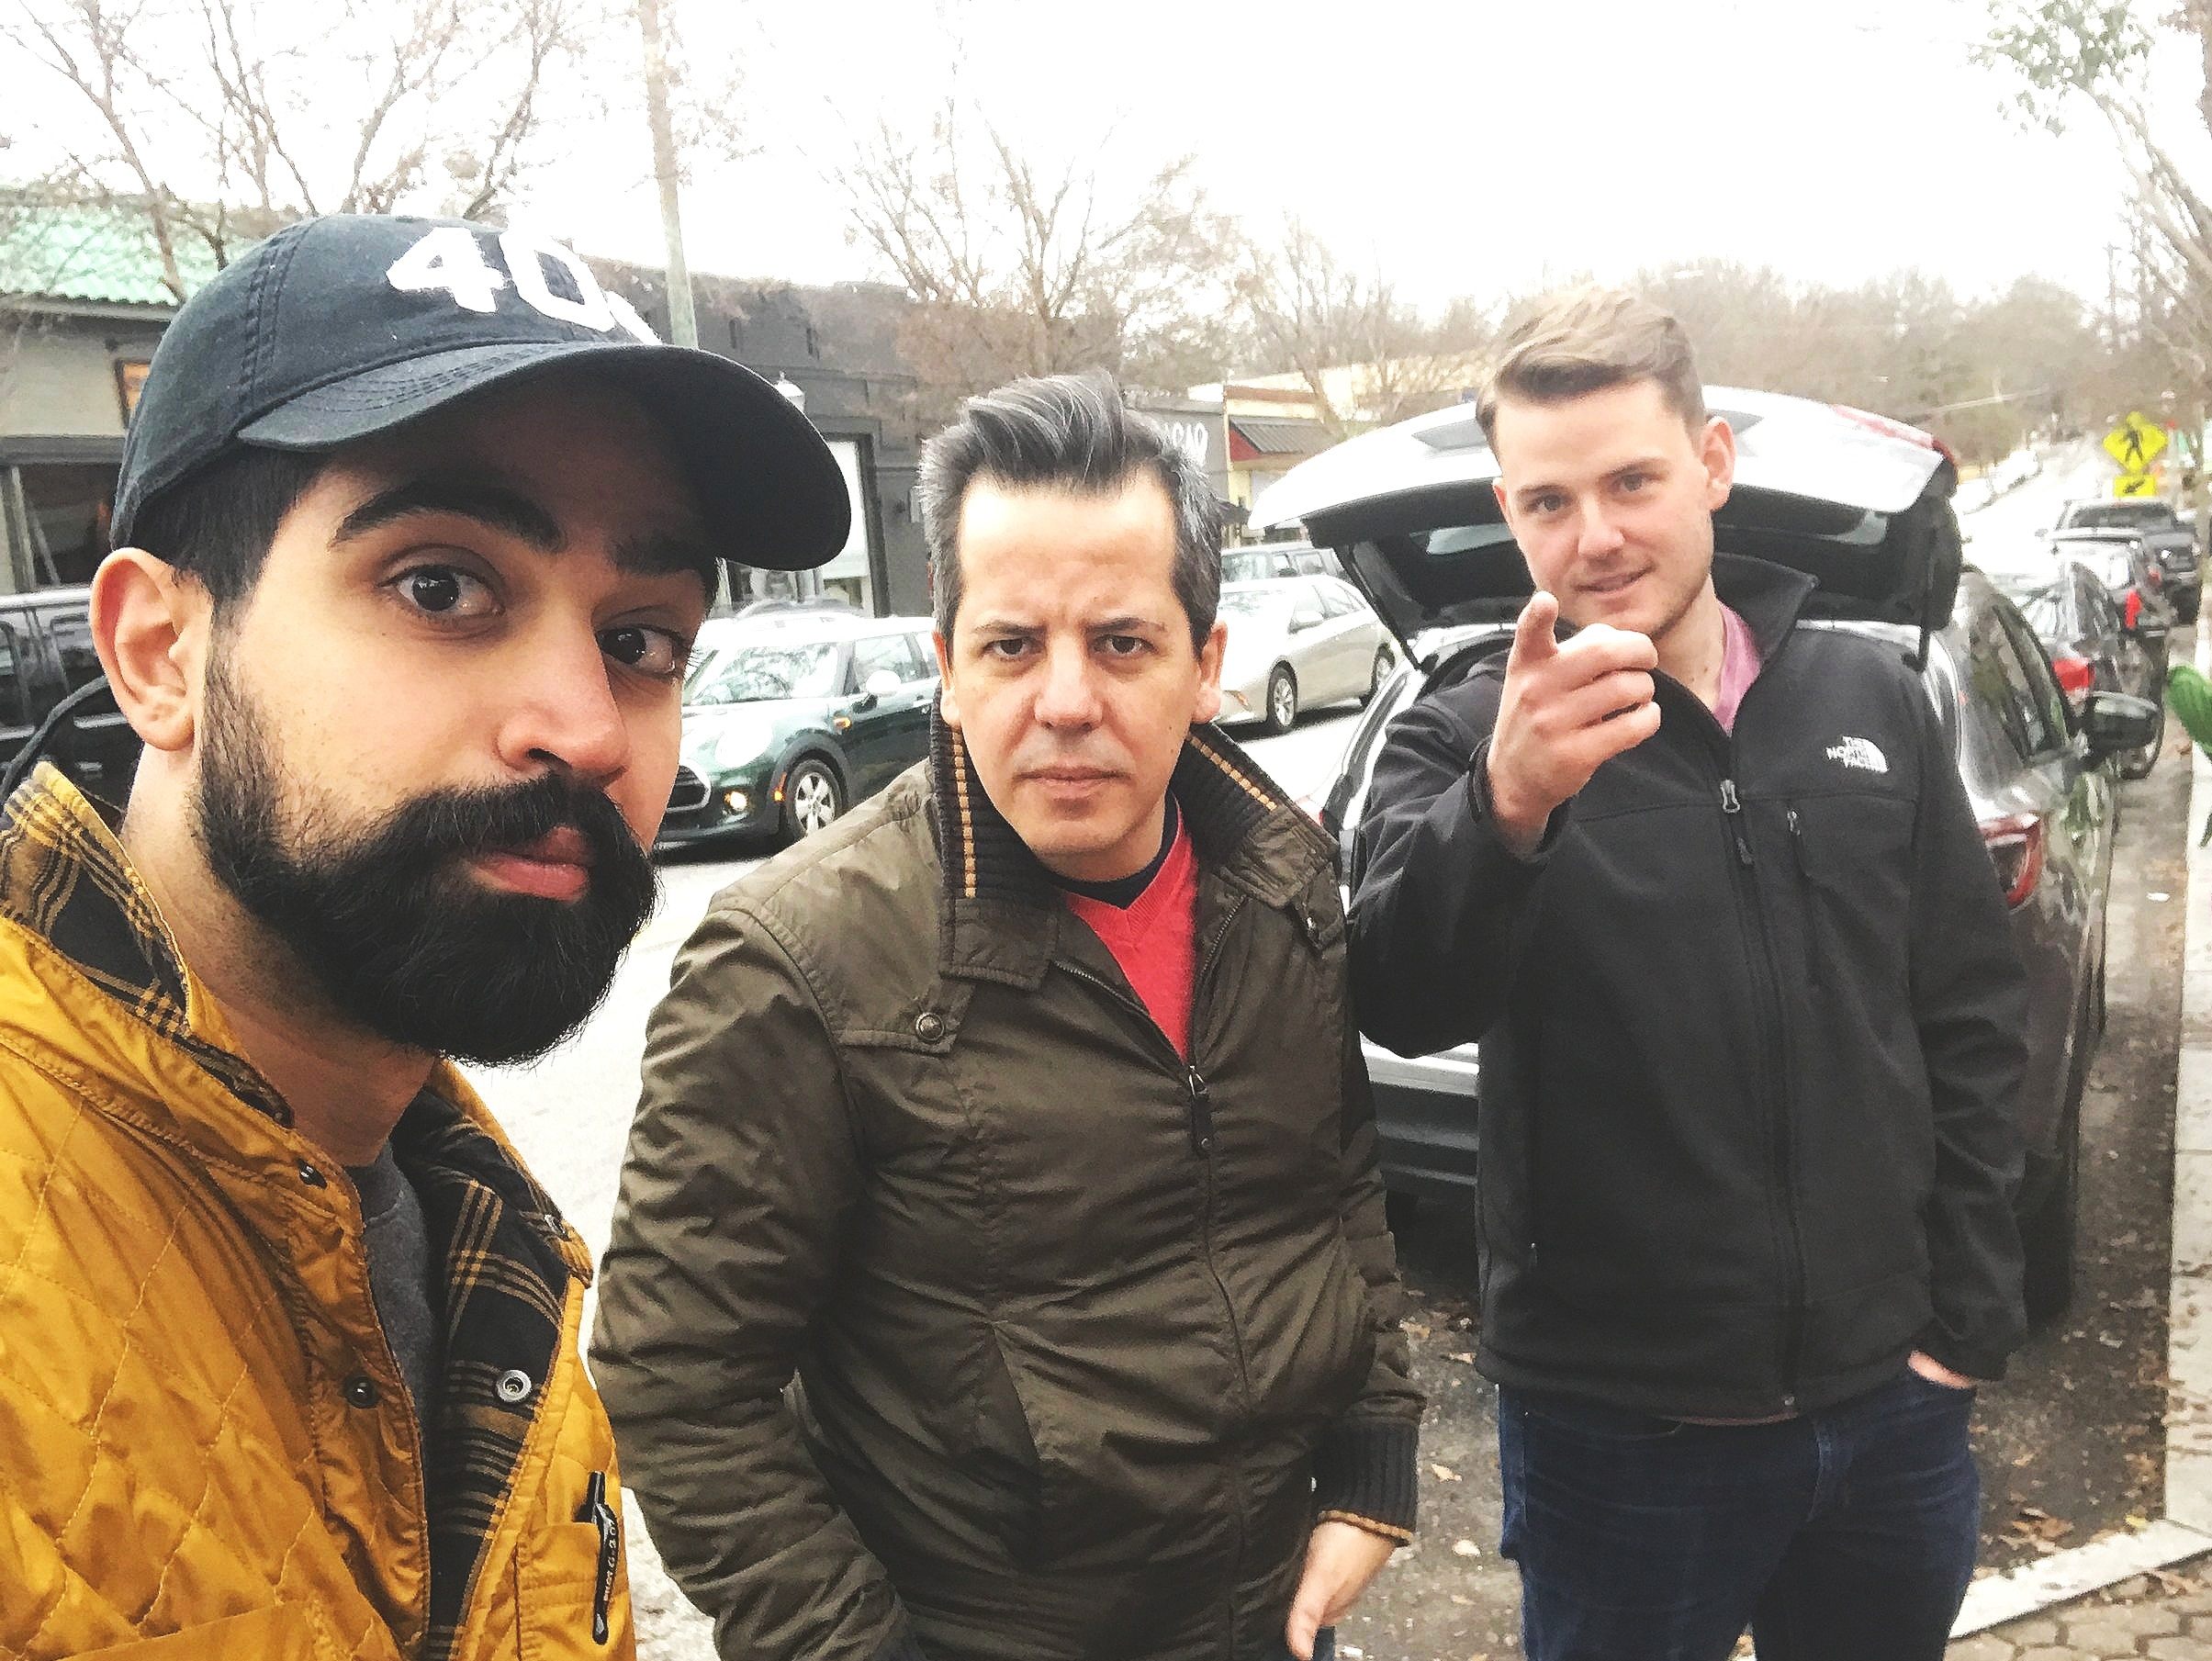 Parsa, Diego, and Nick at Beautify VaHi in Virginia Highlands